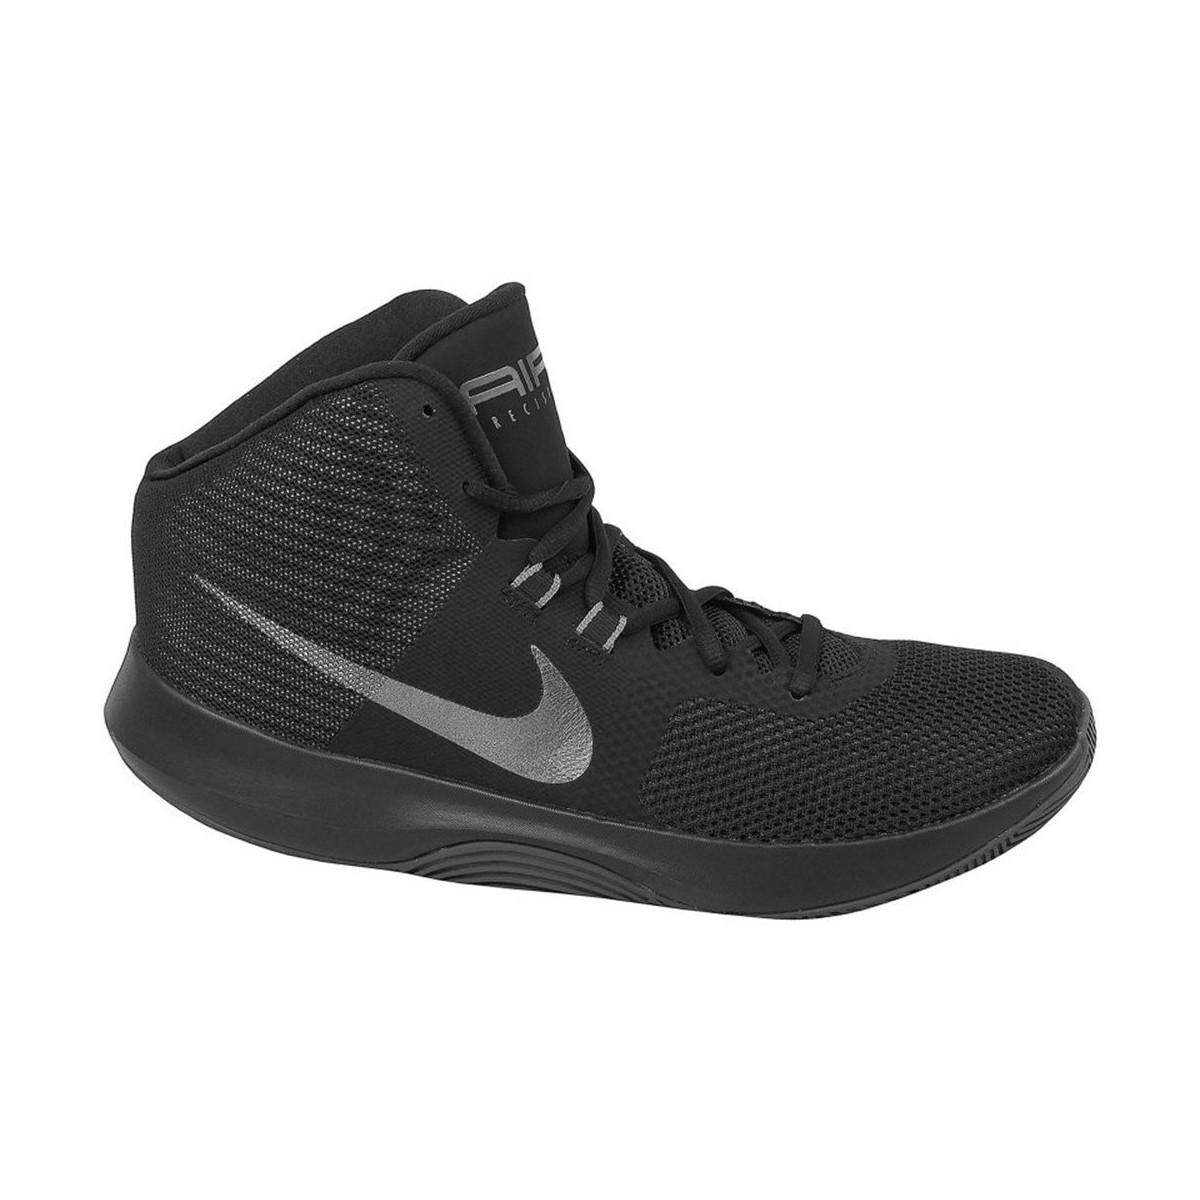 6253ab51c67 Nike Air Precision Nbk Men s Shoes (high-top Trainers) In Black in ...